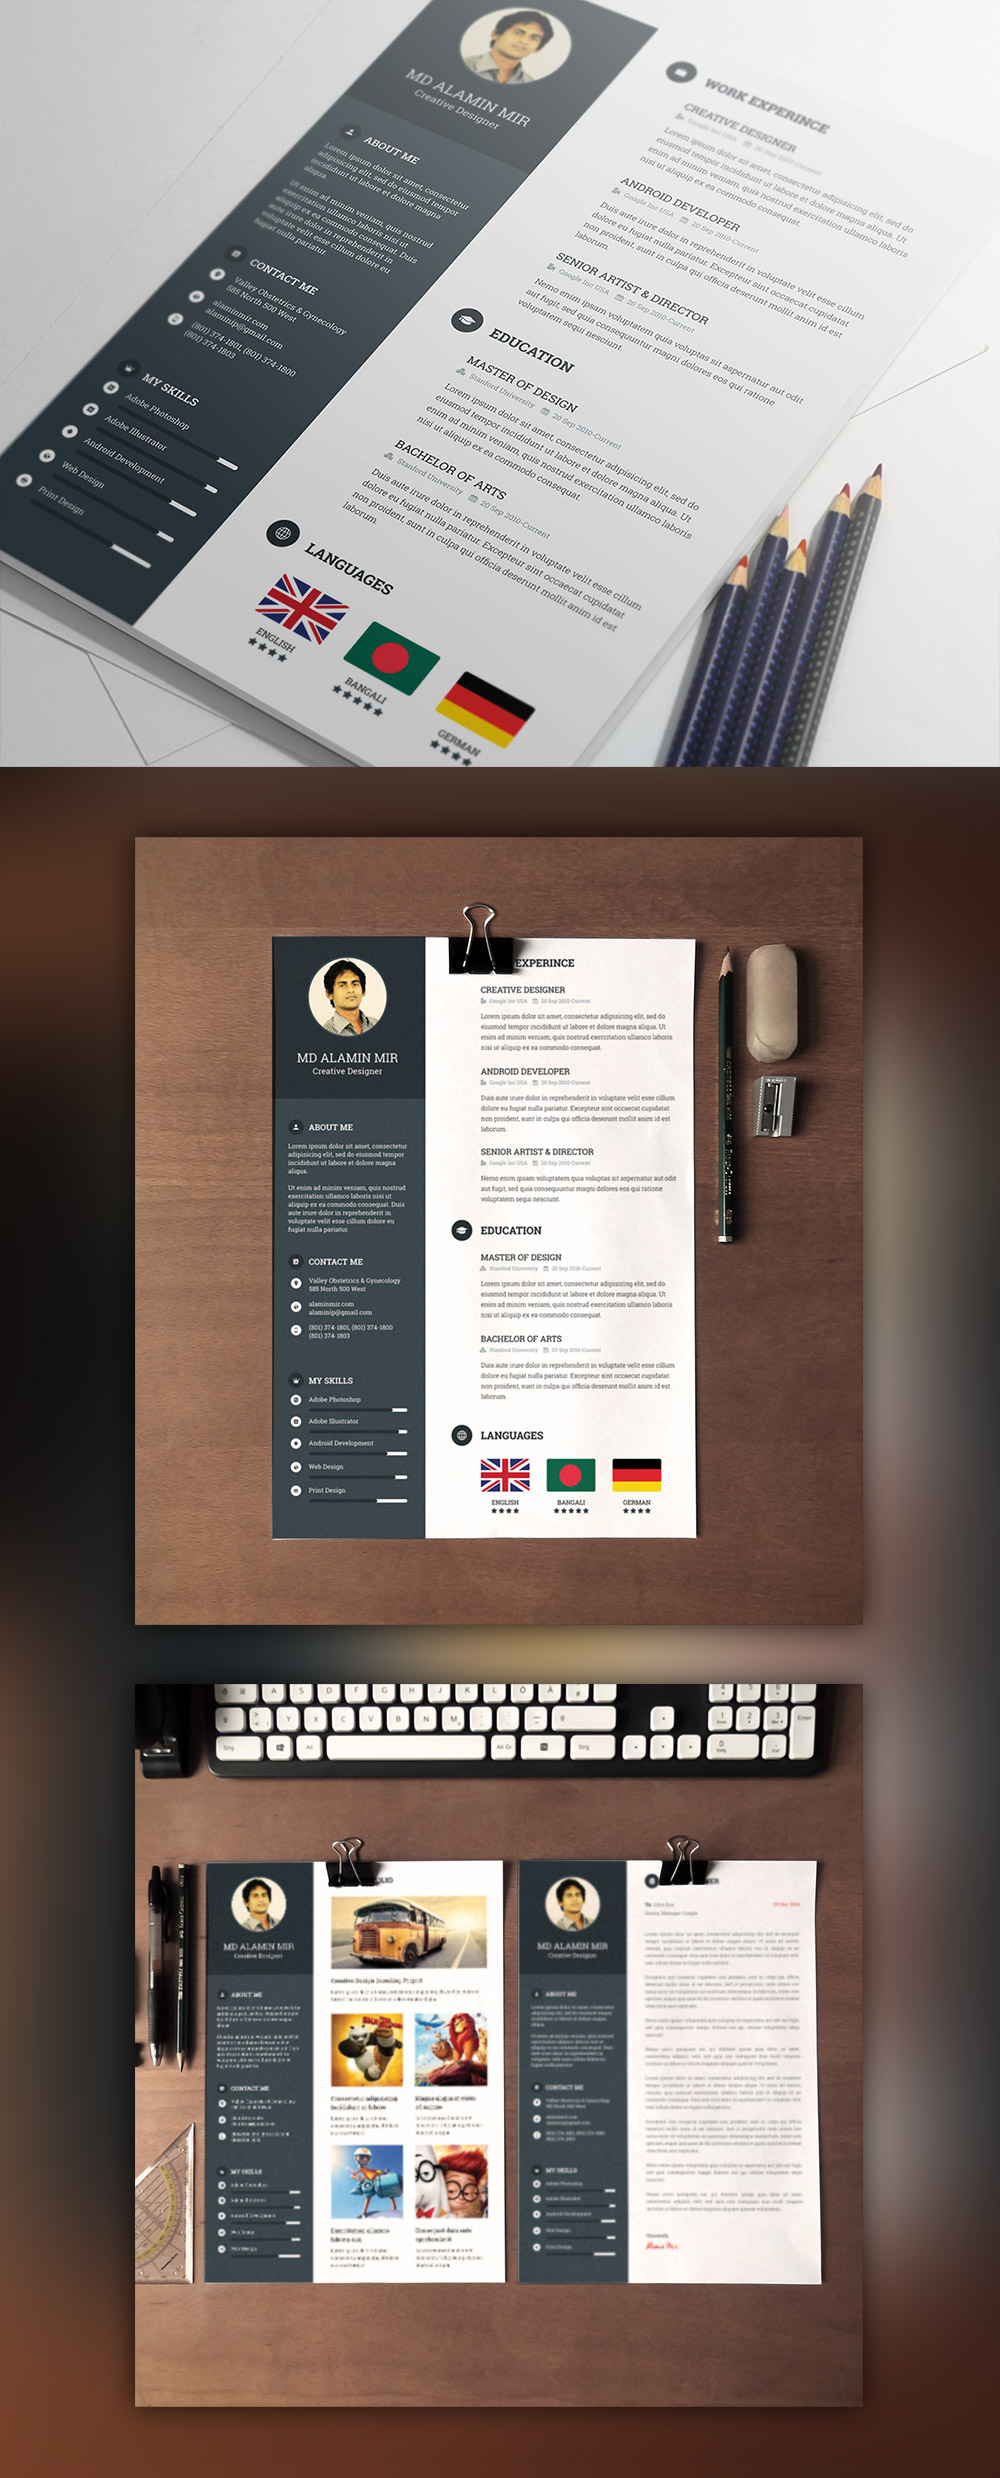 designer resume template cover letter psd at psd cc designer resume template cover letter psd